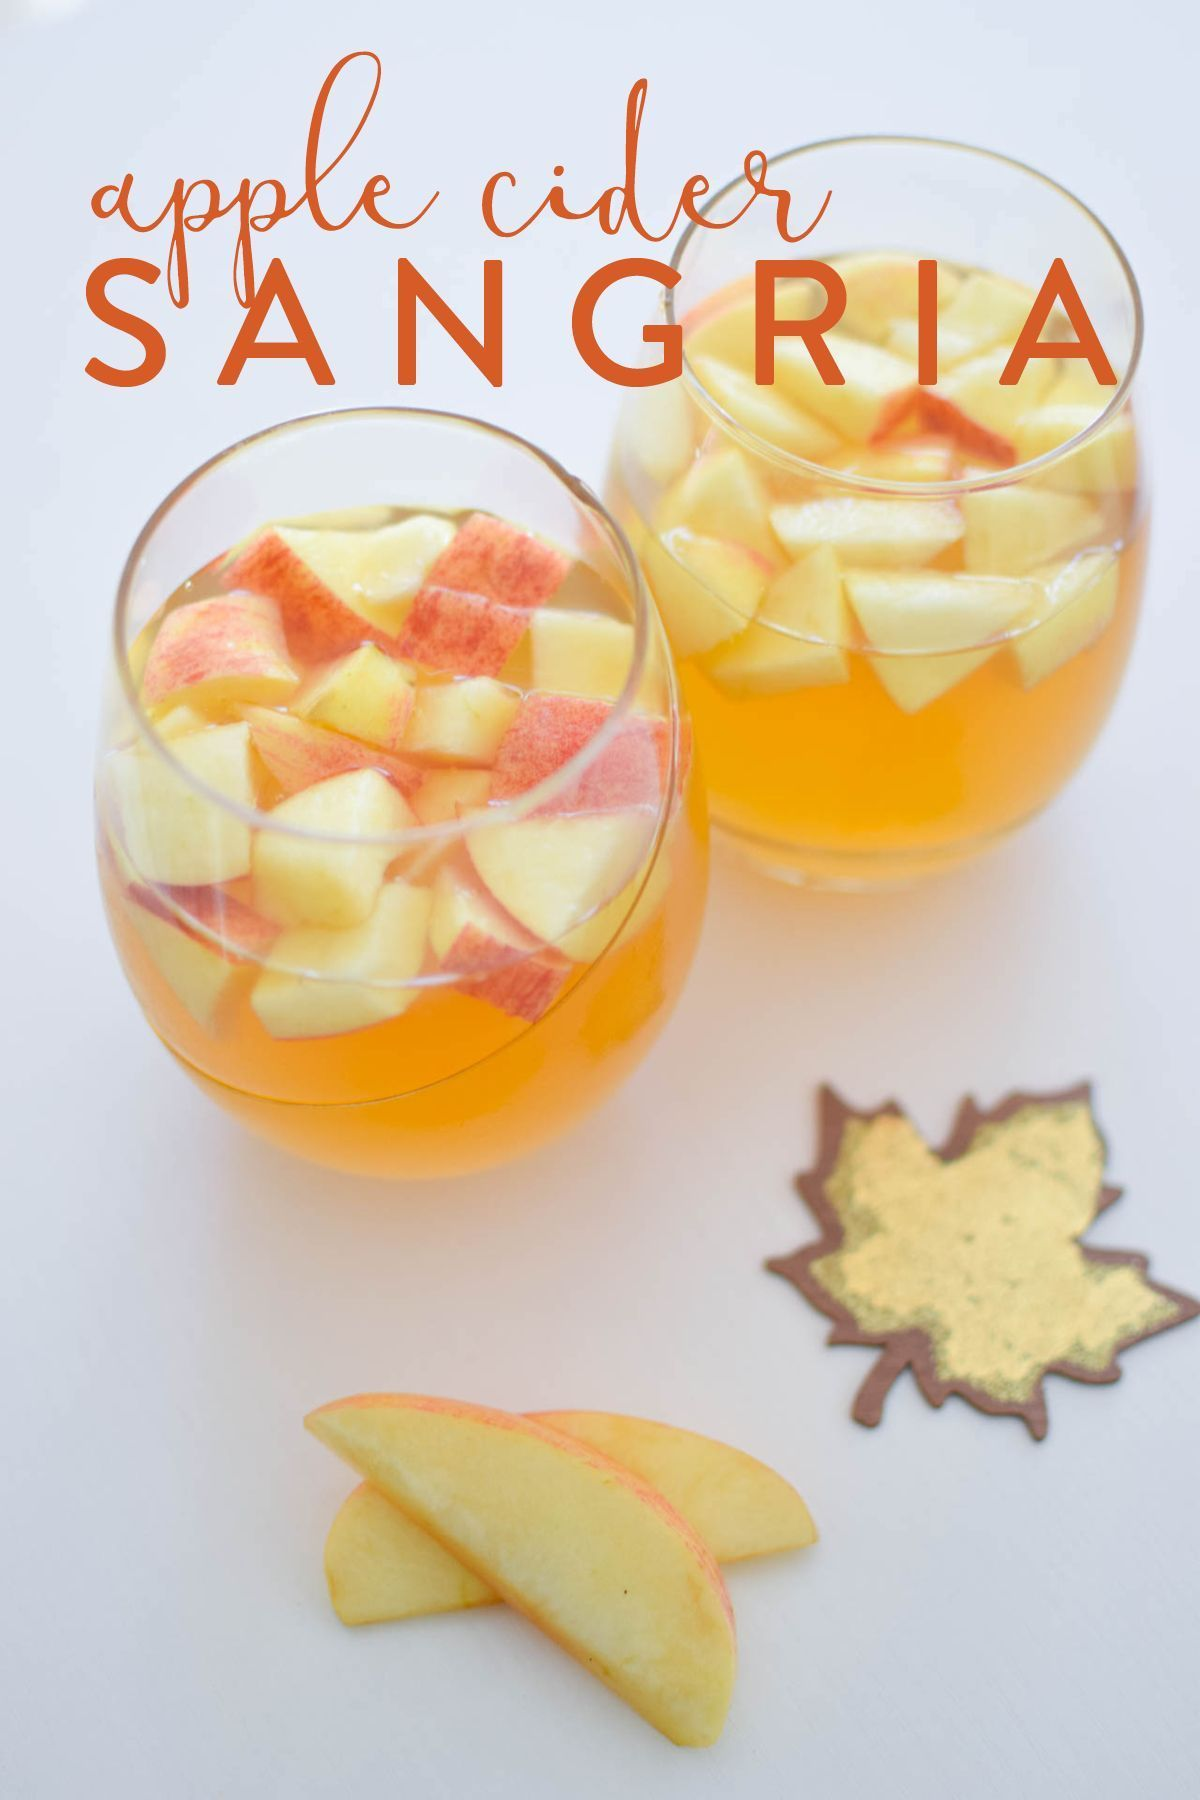 Apple Cider Sangria #applecidersangriarecipe An easy five-ingredient apple cider sangria recipe perfect for football tailgates and chilly fall dates. #applecidersangriarecipe Apple Cider Sangria #applecidersangriarecipe An easy five-ingredient apple cider sangria recipe perfect for football tailgates and chilly fall dates. #applecidersangriarecipe